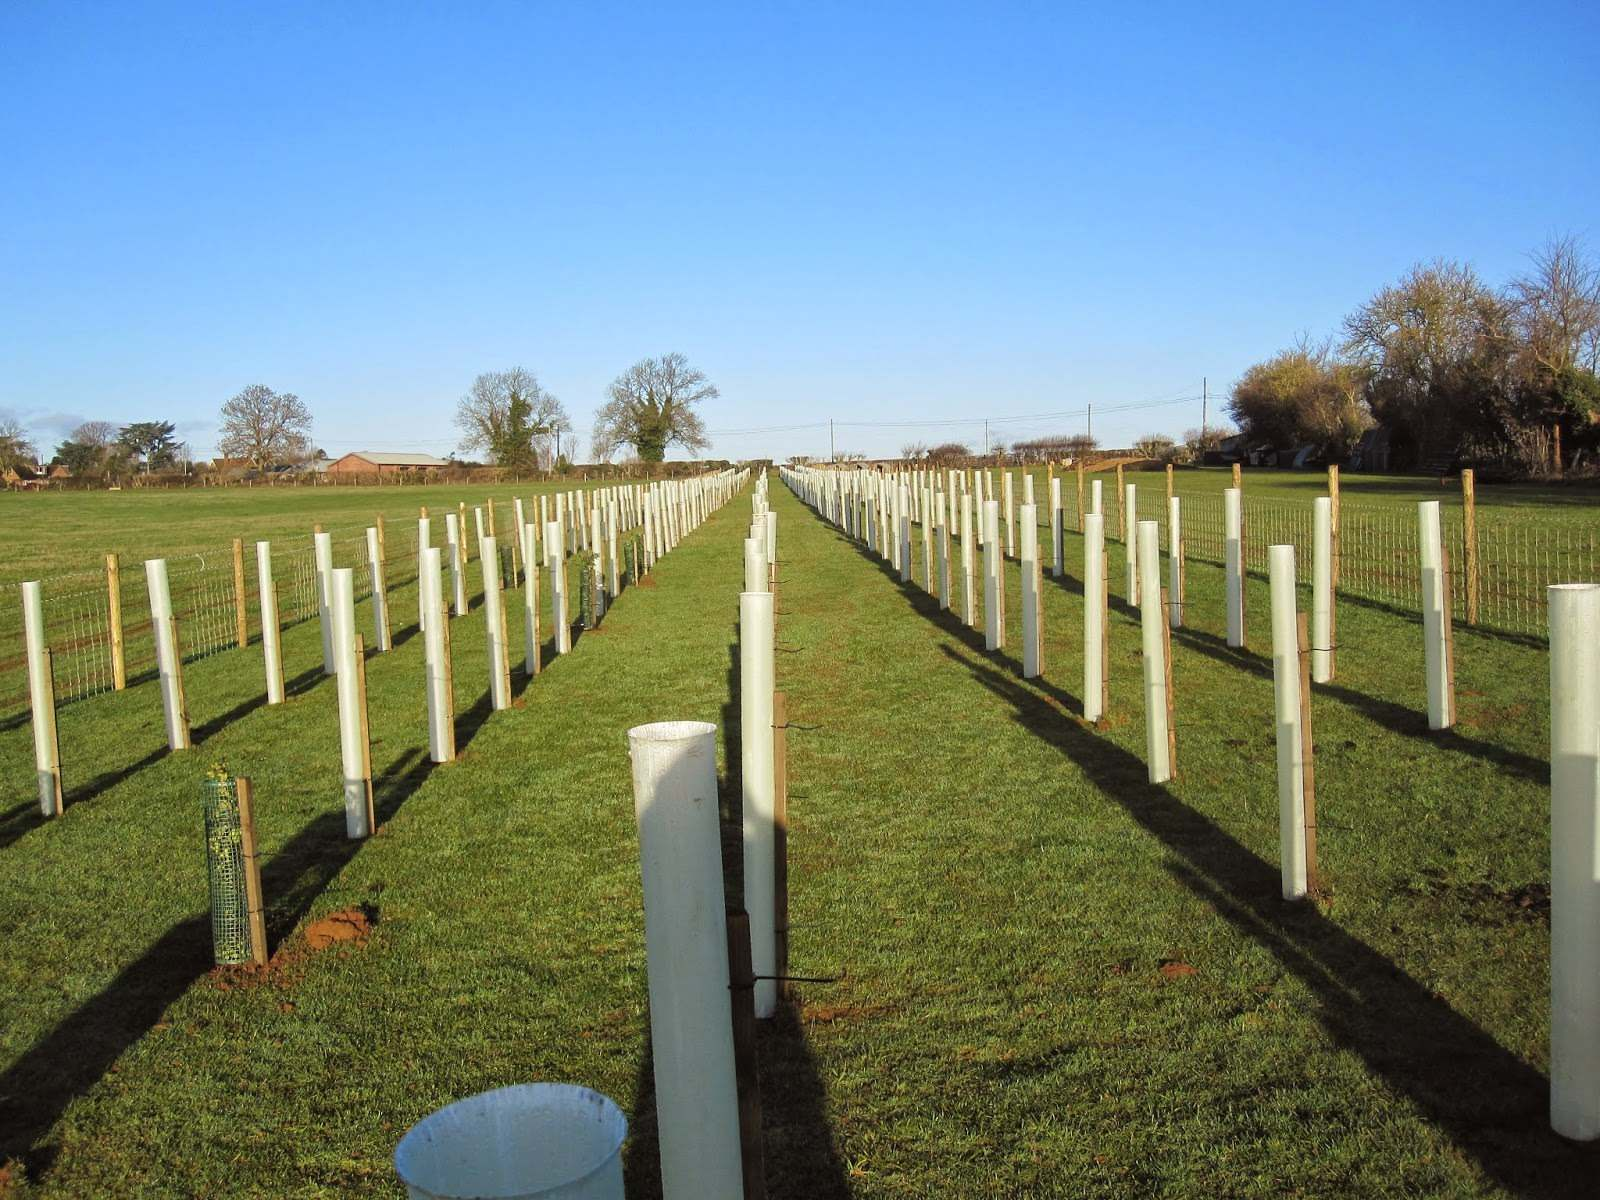 HS2_screening_woodland_belt_screen_planting_fencing_guards_shelter_net_hewly_planted_farmland